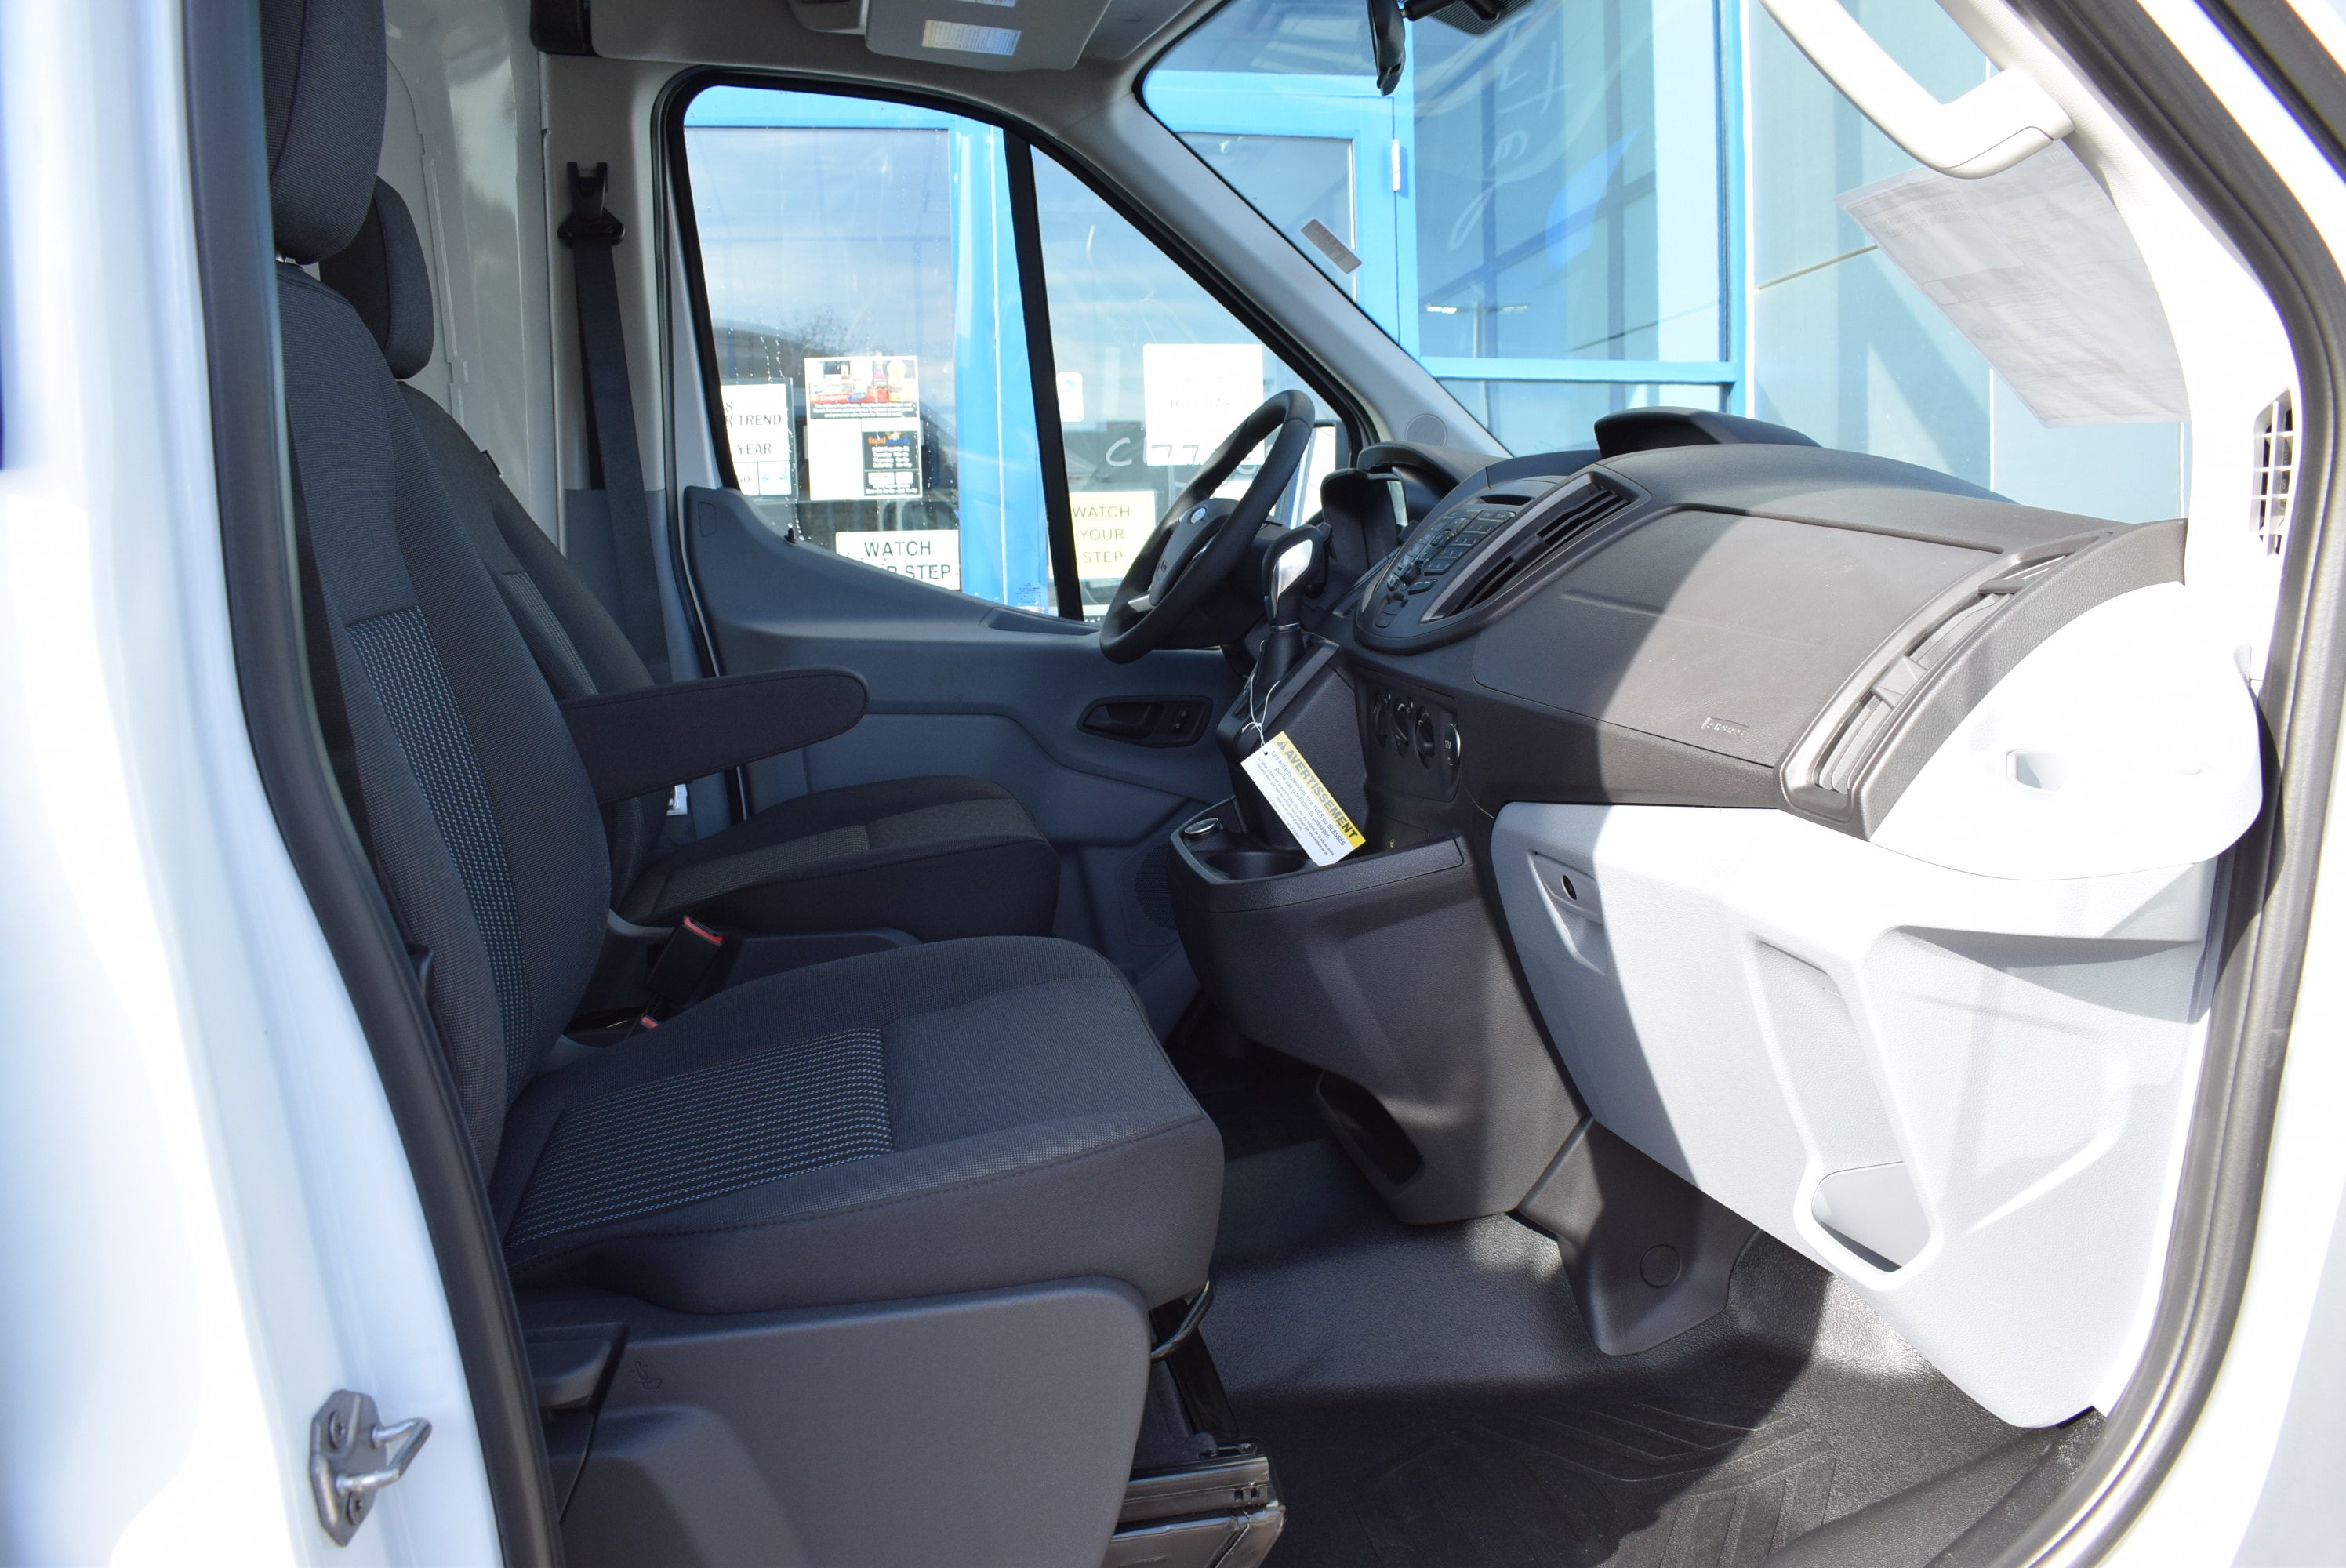 2019 Transit 250 Med Roof 4x2,  Empty Cargo Van #T19036 - photo 18